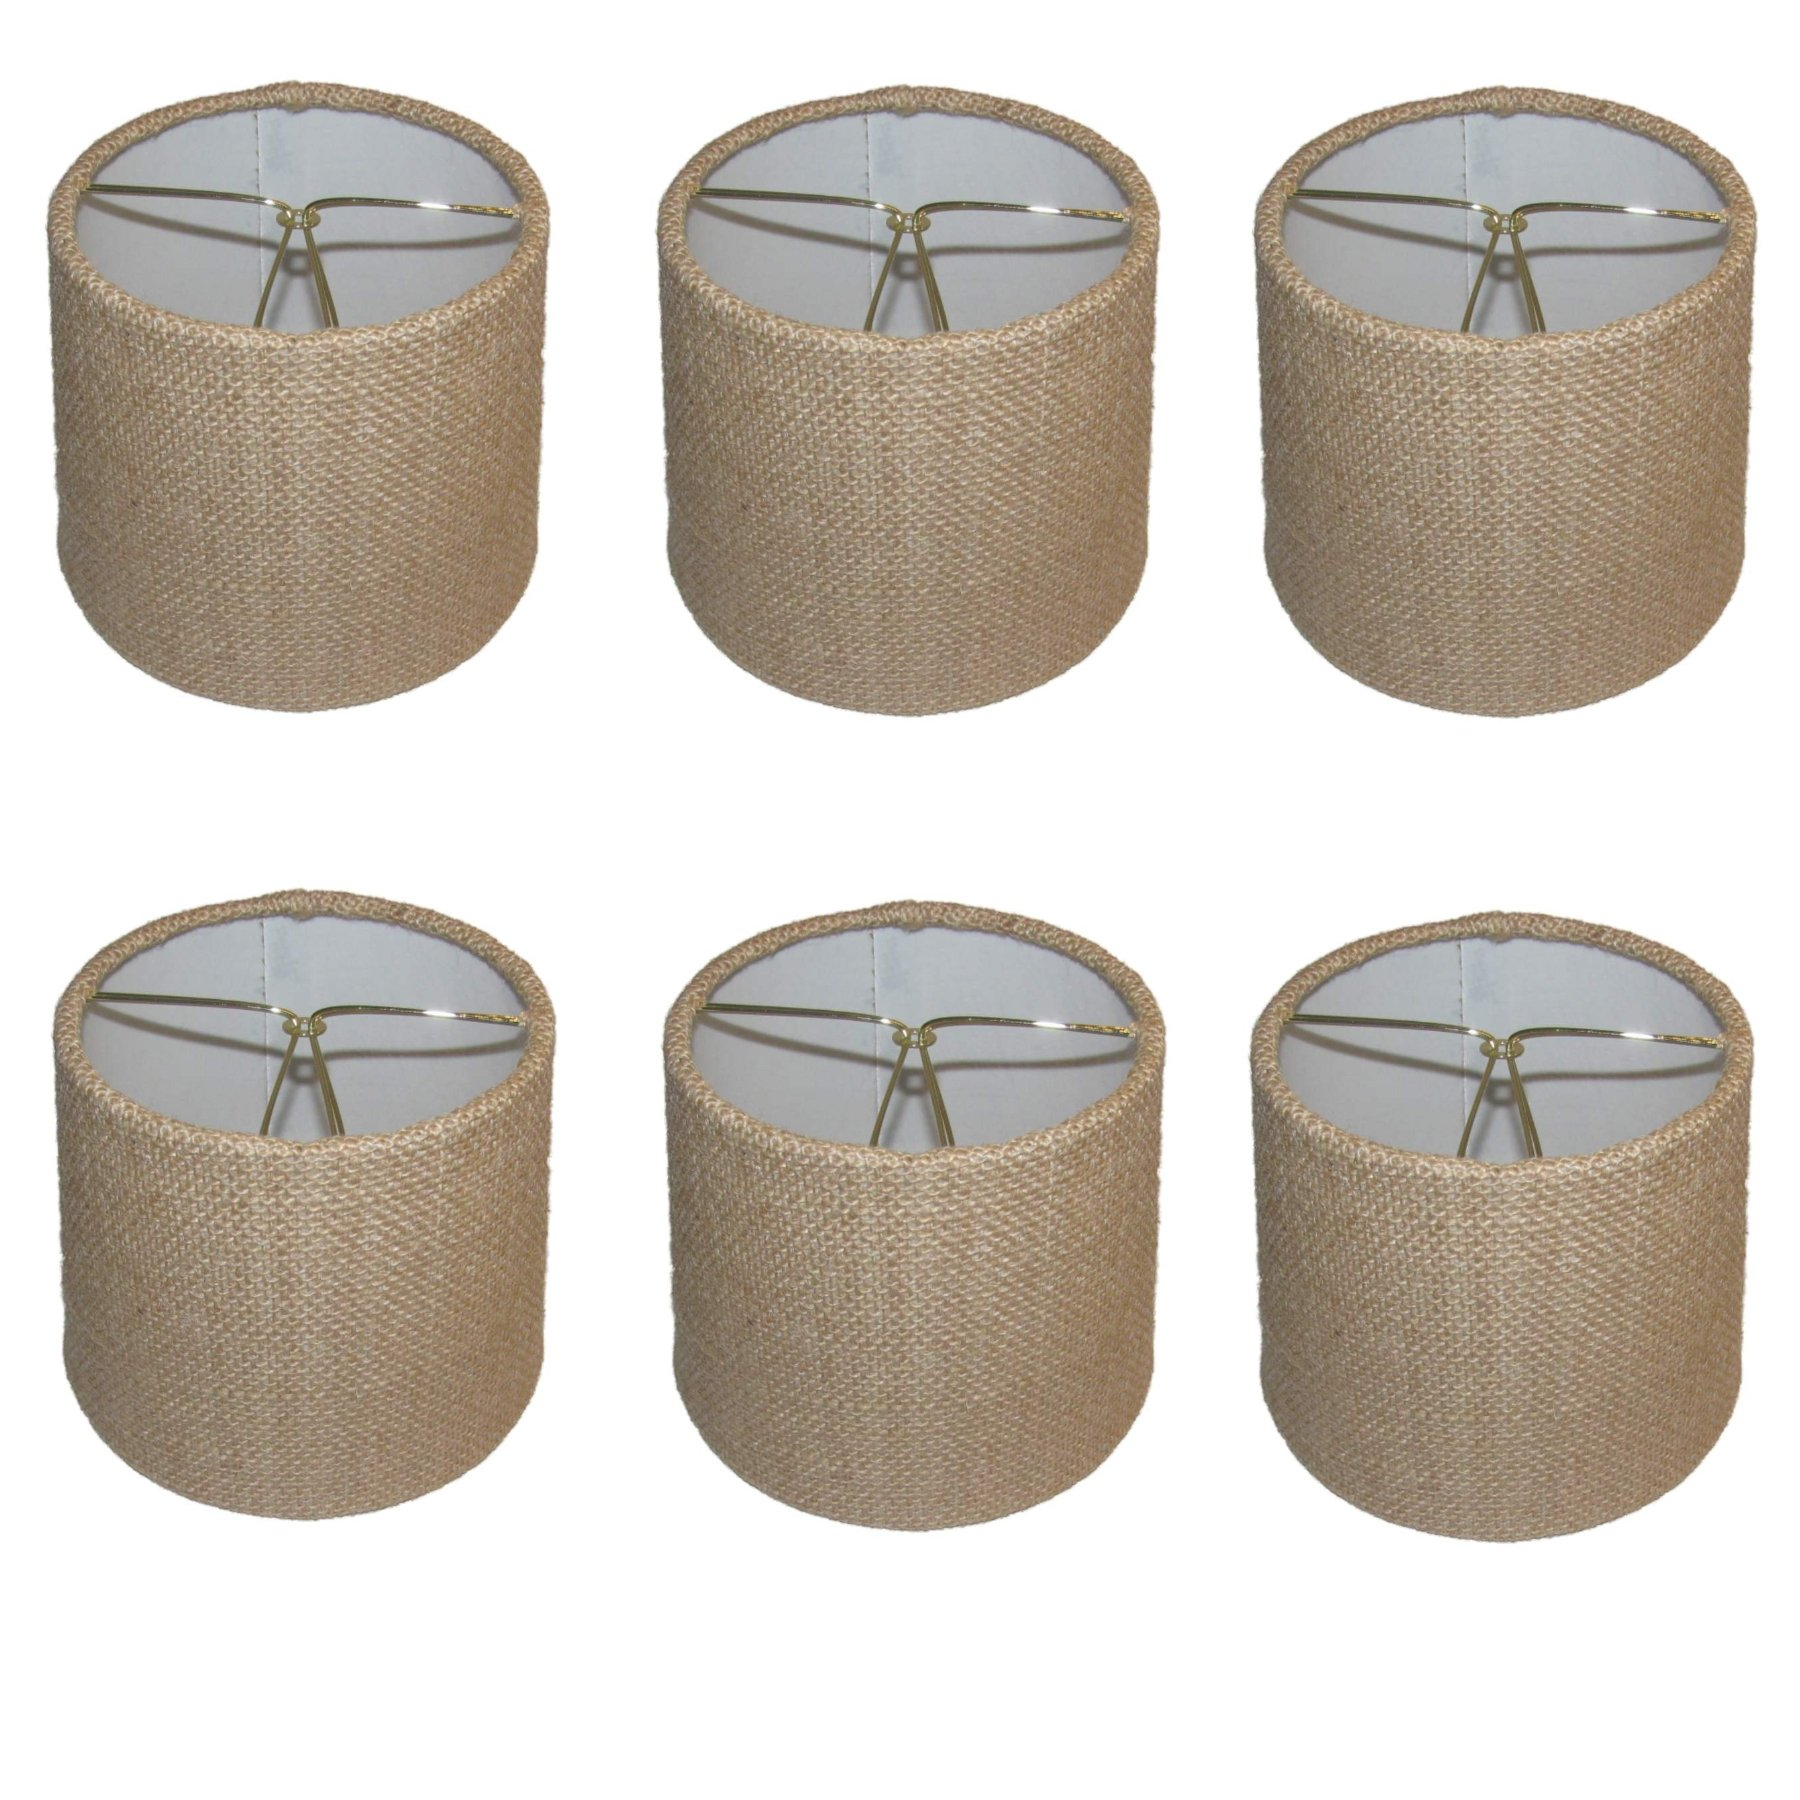 Cheap burlap chandelier shades find burlap chandelier shades deals get quotations upgradelights set of six 6 inch barrel drum chandelier shades in natural burlap fabric arubaitofo Choice Image